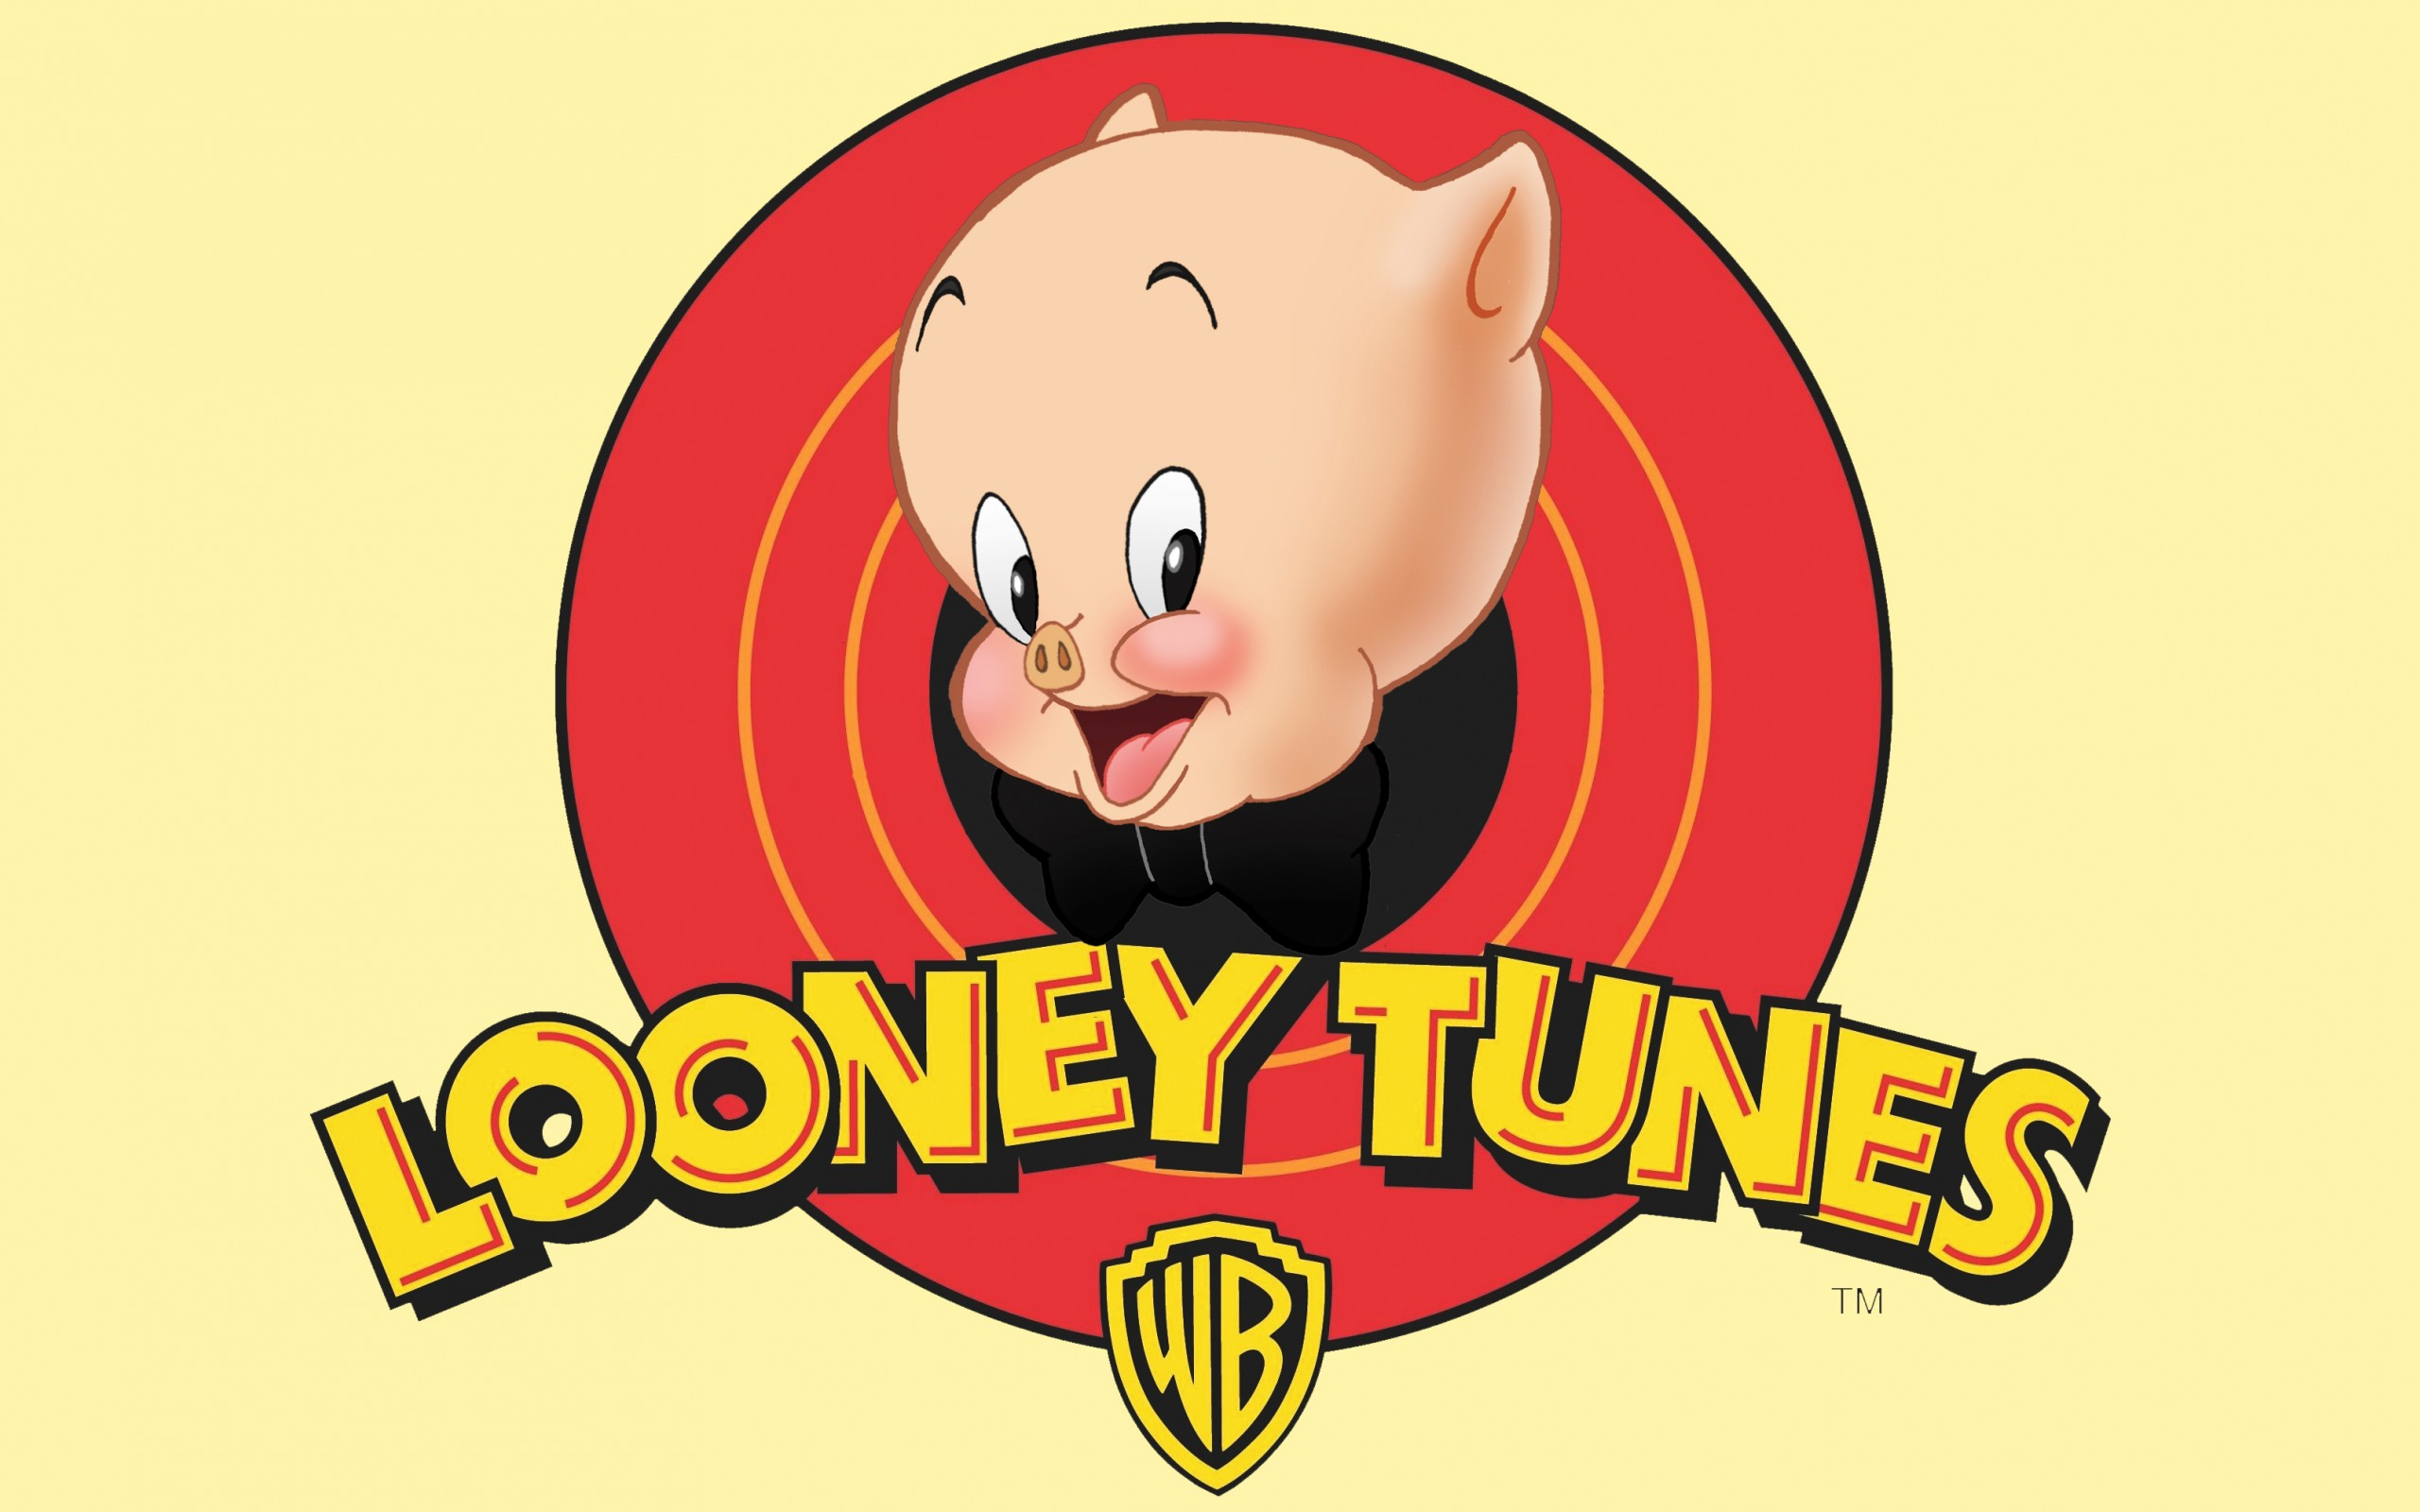 Looney Tunes Porky Pig Wallpapers 2560x1600 323160